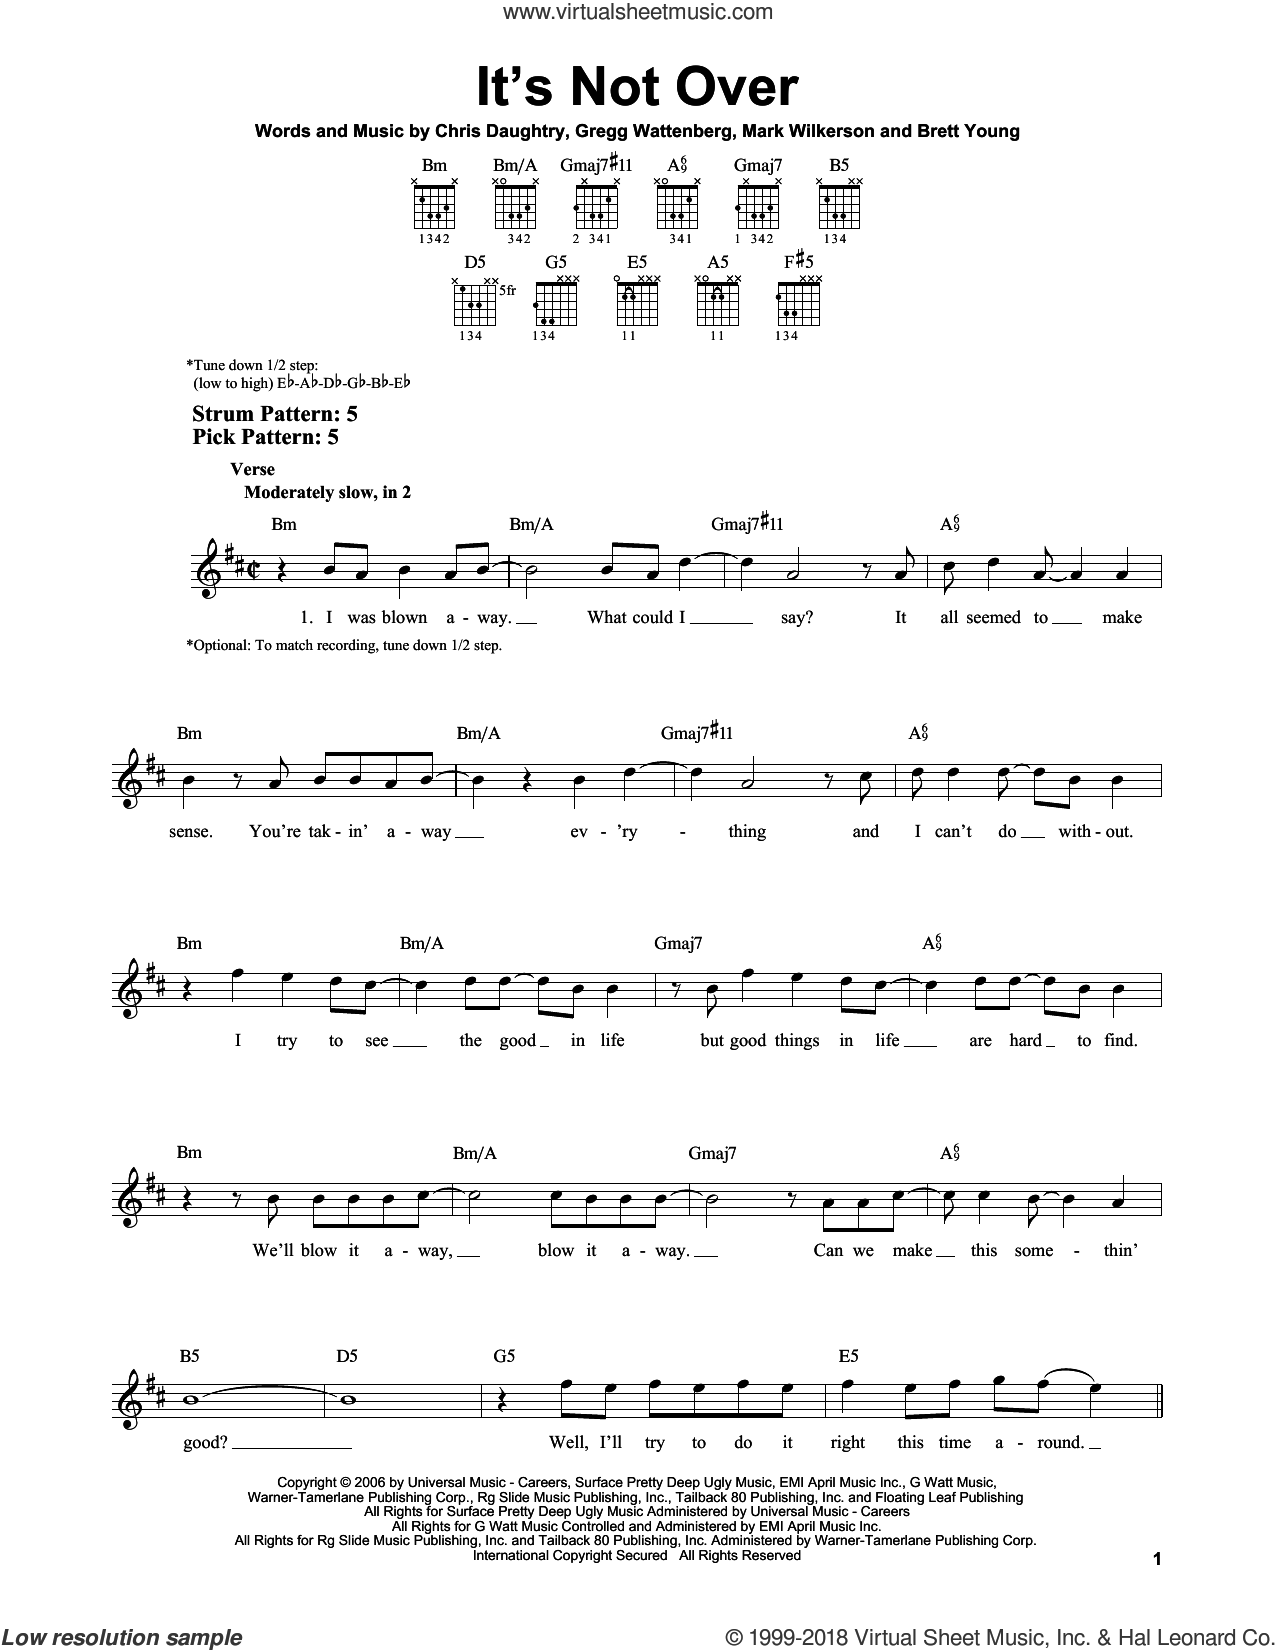 It's Not Over sheet music for guitar solo (chords) by Daughtry, Brett Young, Chris Daughtry, Gregg Wattenberg and Mark Wilkerson, easy guitar (chords)